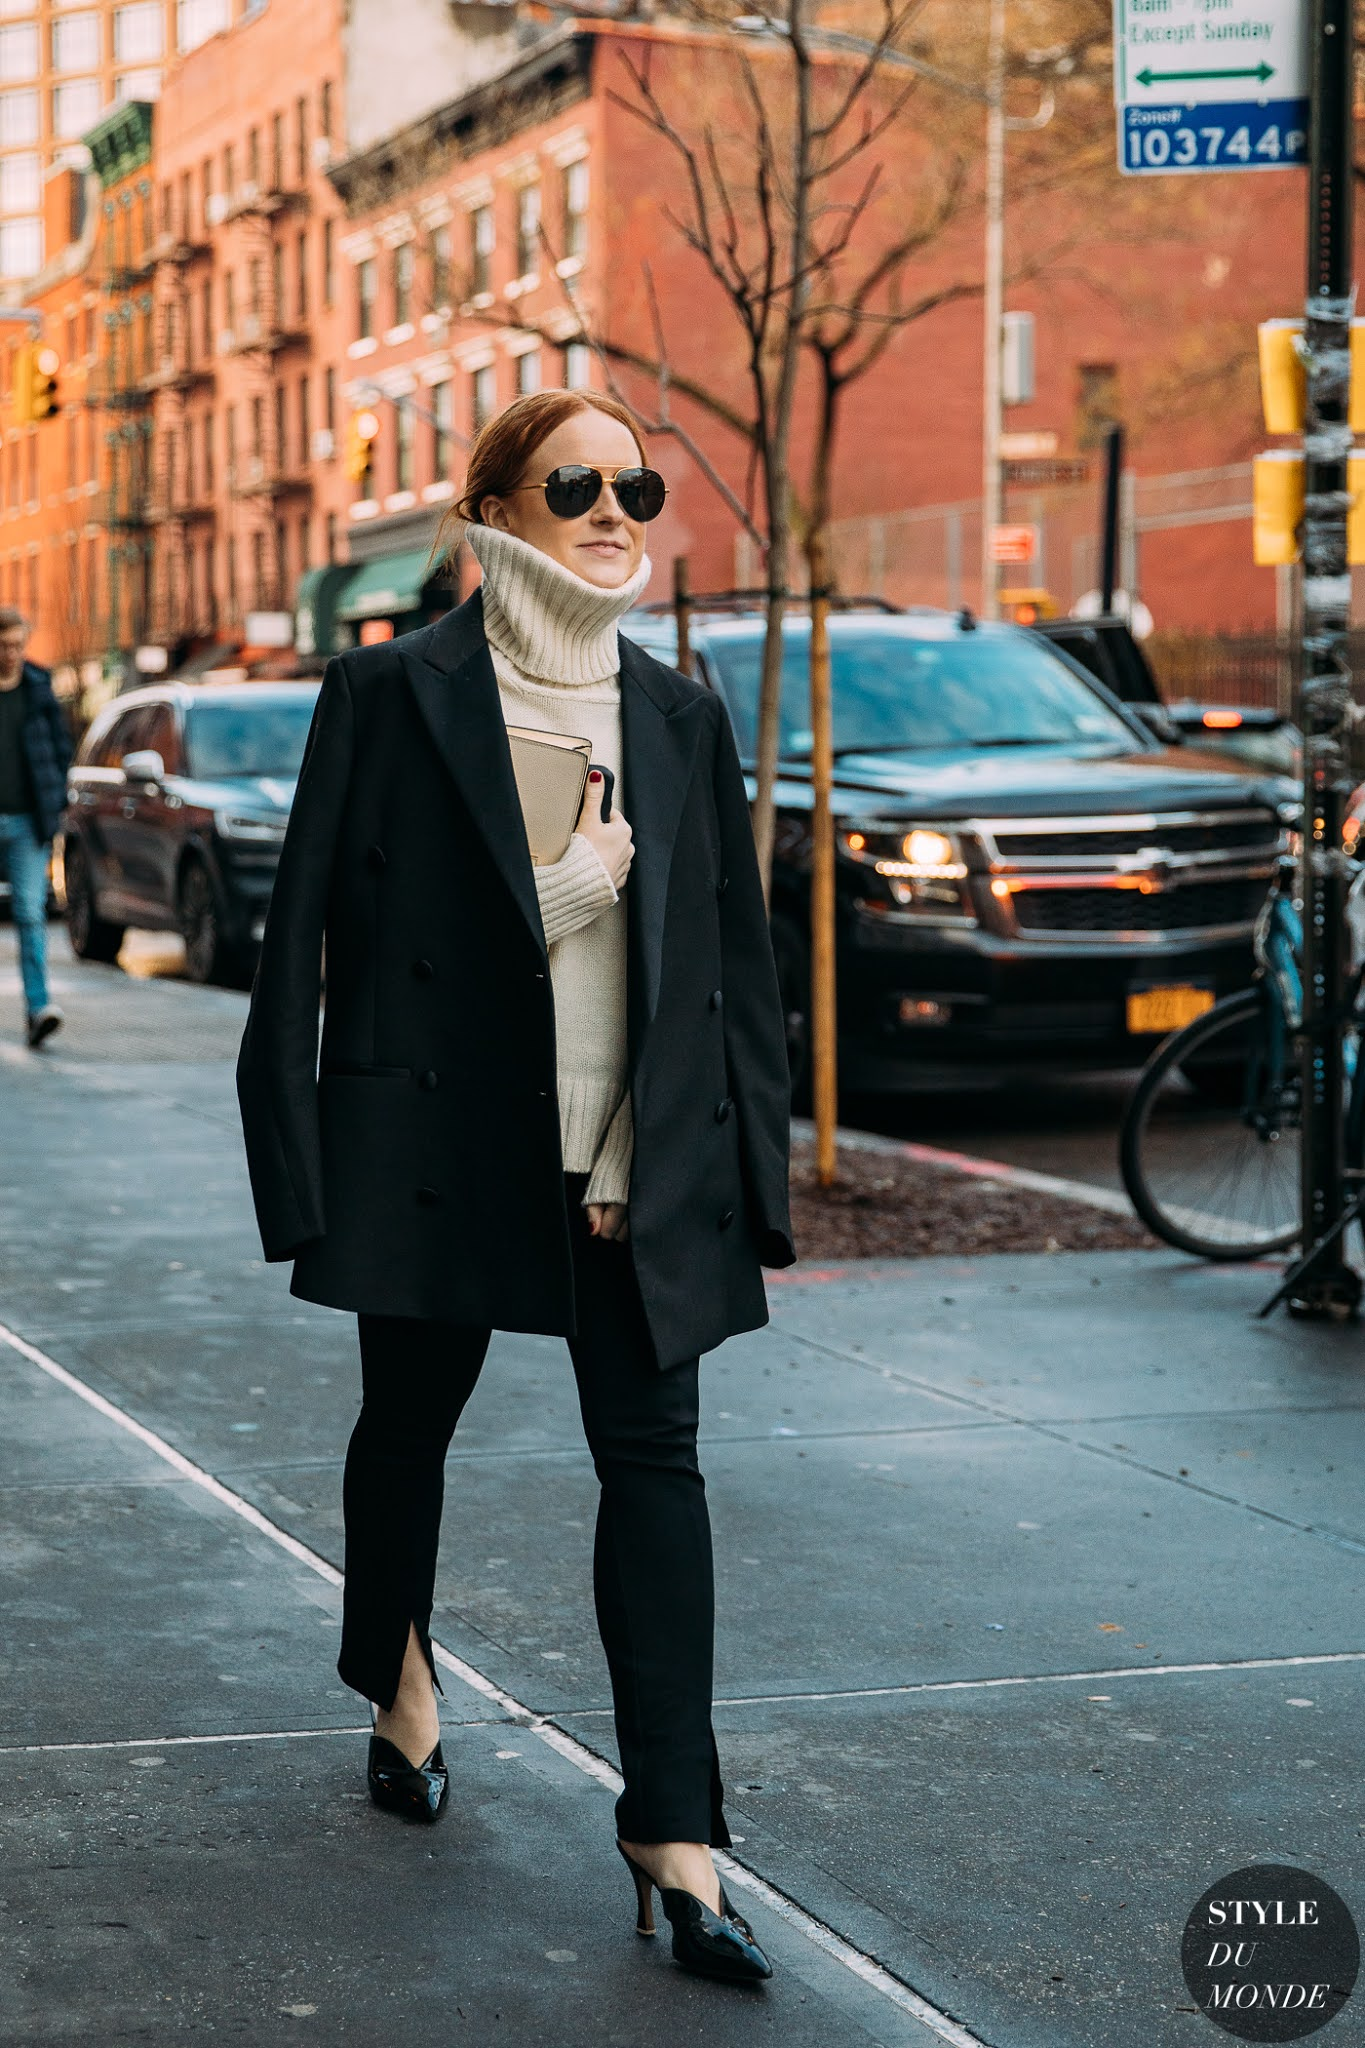 Libby Page Street Style Fall and Winter Outfit Idea With Chunky Turtleneck Sweater, Blazer, Ankle-Slit Pants and Mule Heels